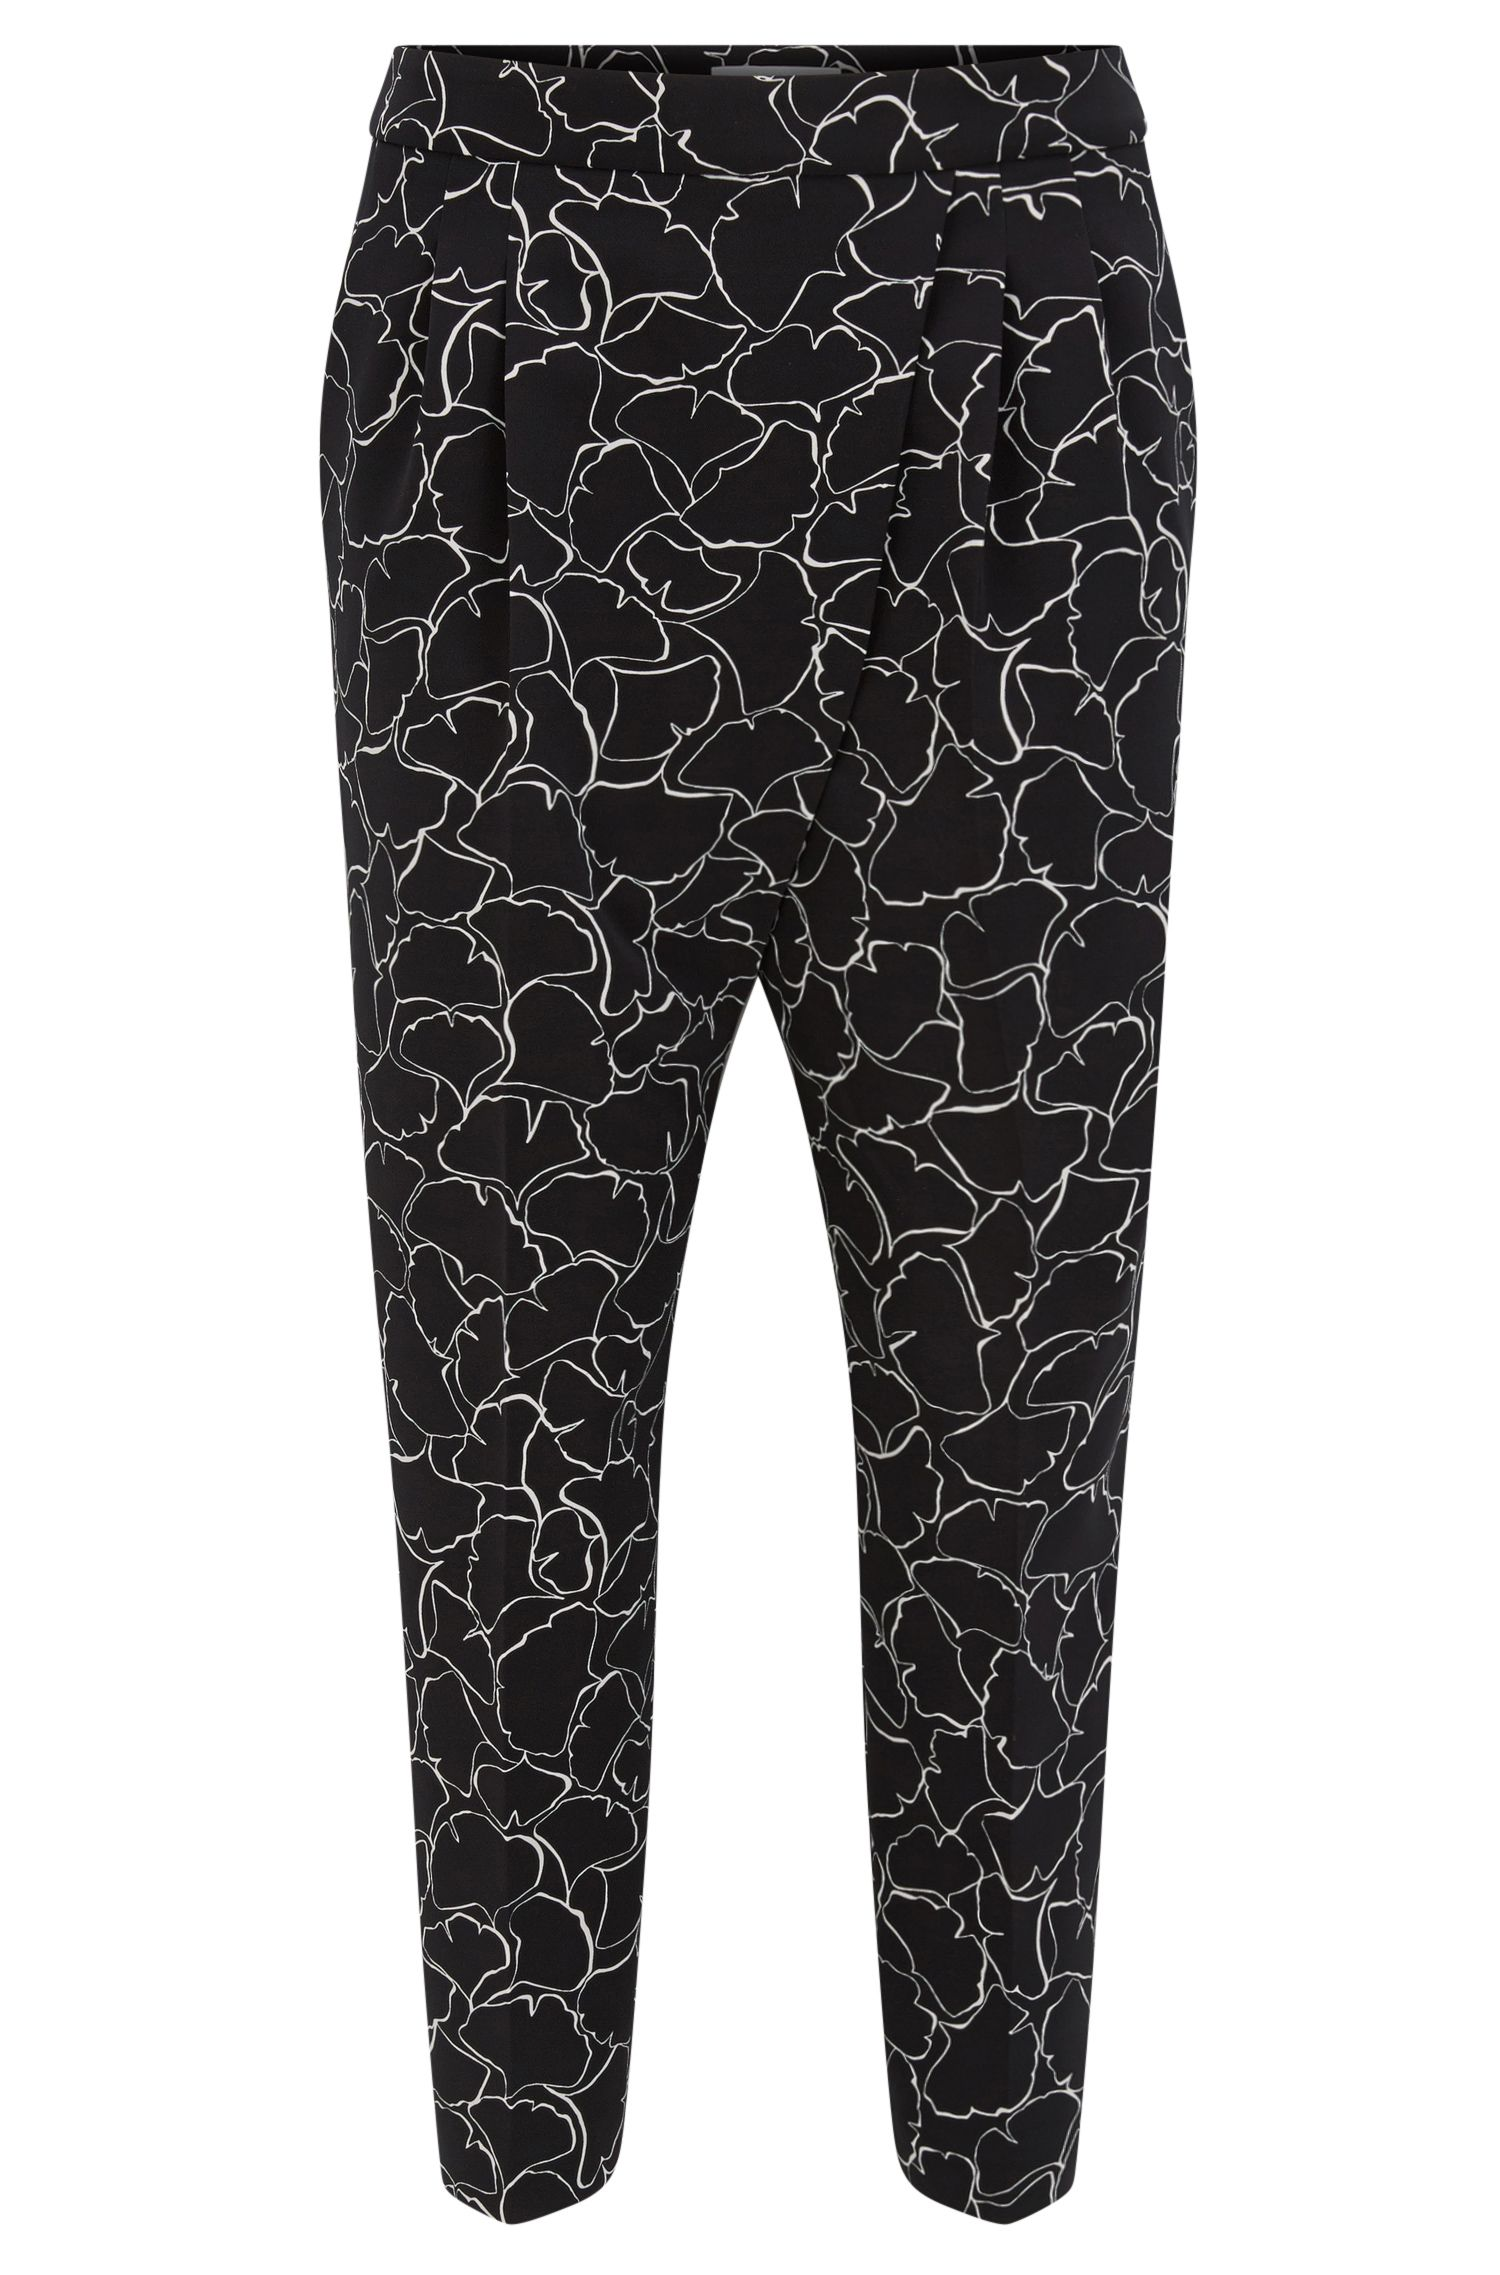 Regular-fit, cropped broek van stretchmateriaal